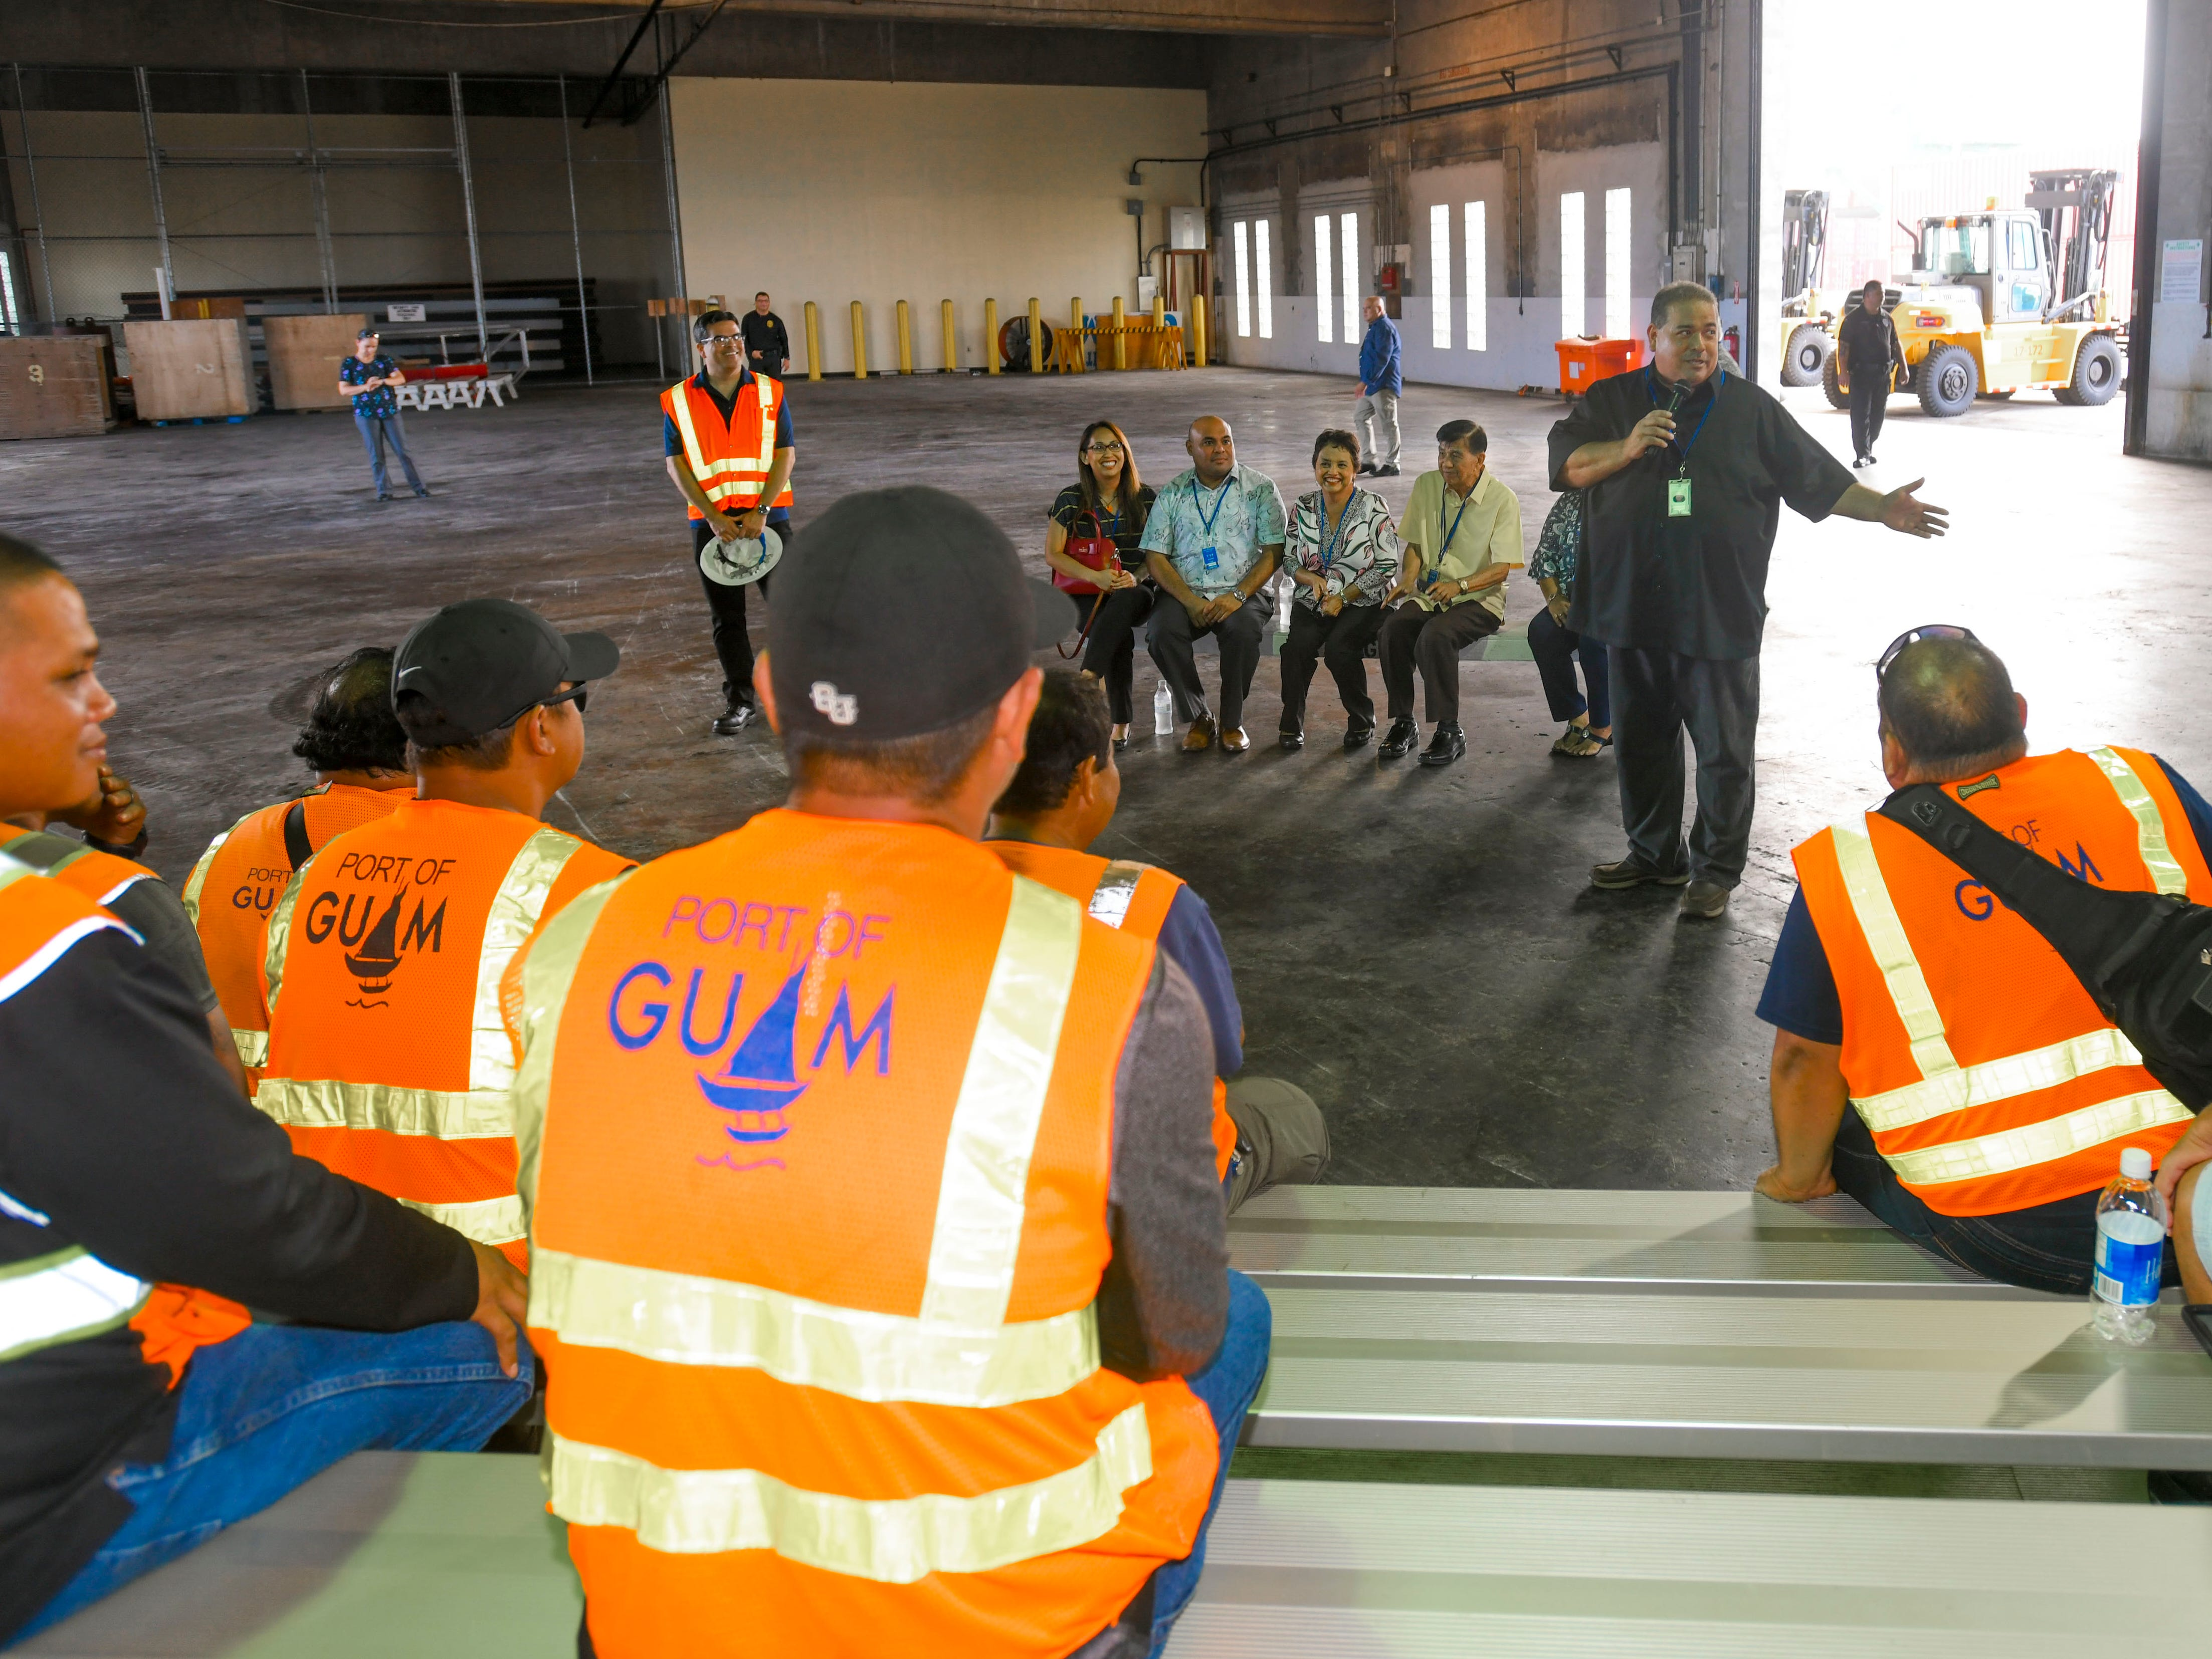 Deputy General Manager Dominic Muna solicits questions for port employees during a port visit by Gov. Lou Leon Guerrero, Lt. Gov. Josh Tenorio and others, at the Jose D. Leon Guerrero Commercial Port in Piti on Wednesday, March 13, 2019.